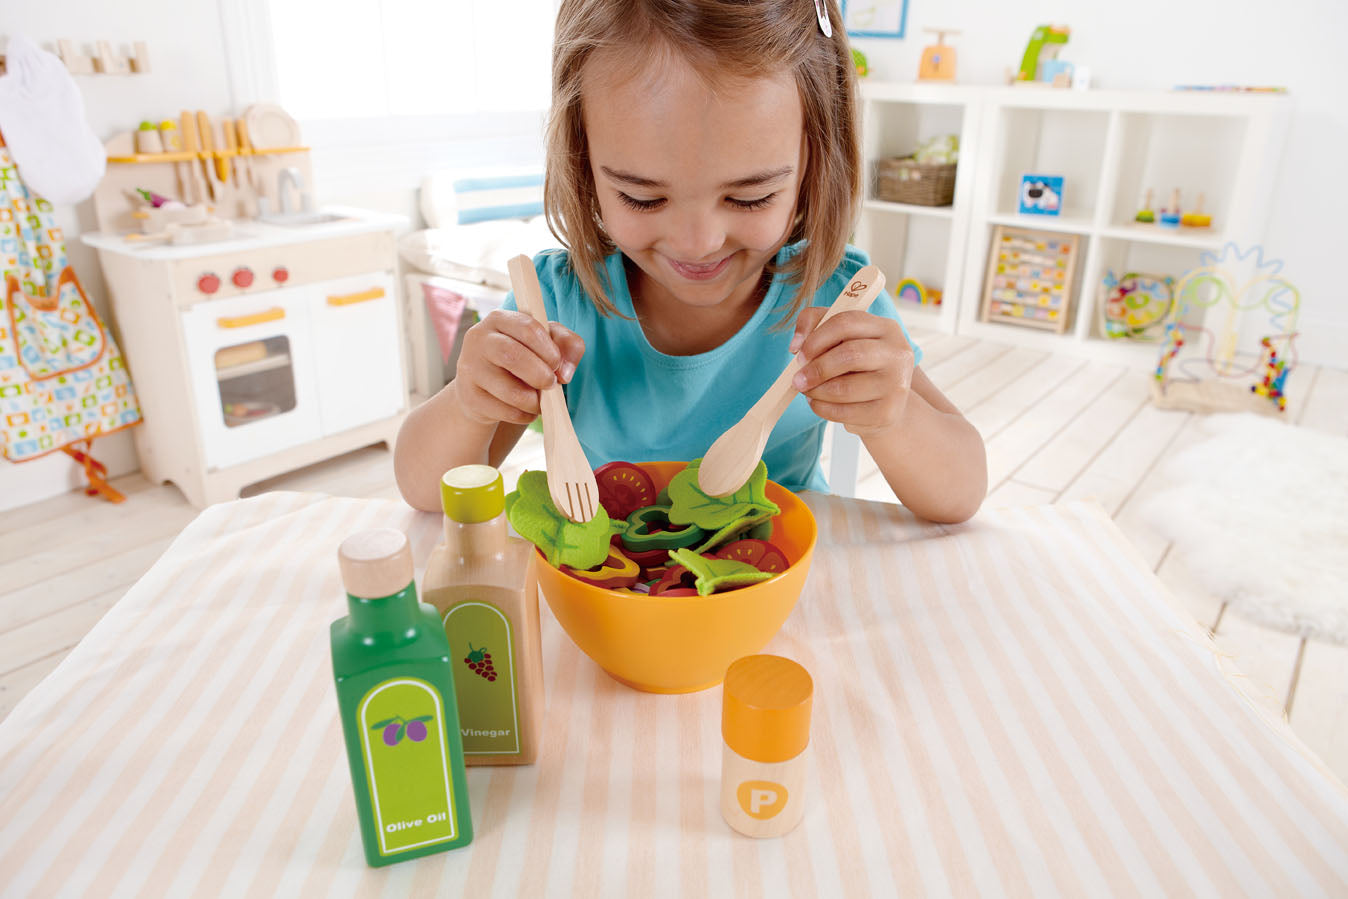 Hape Garden Salad Wood Play Kitchen Play Set - WoodenToys.com